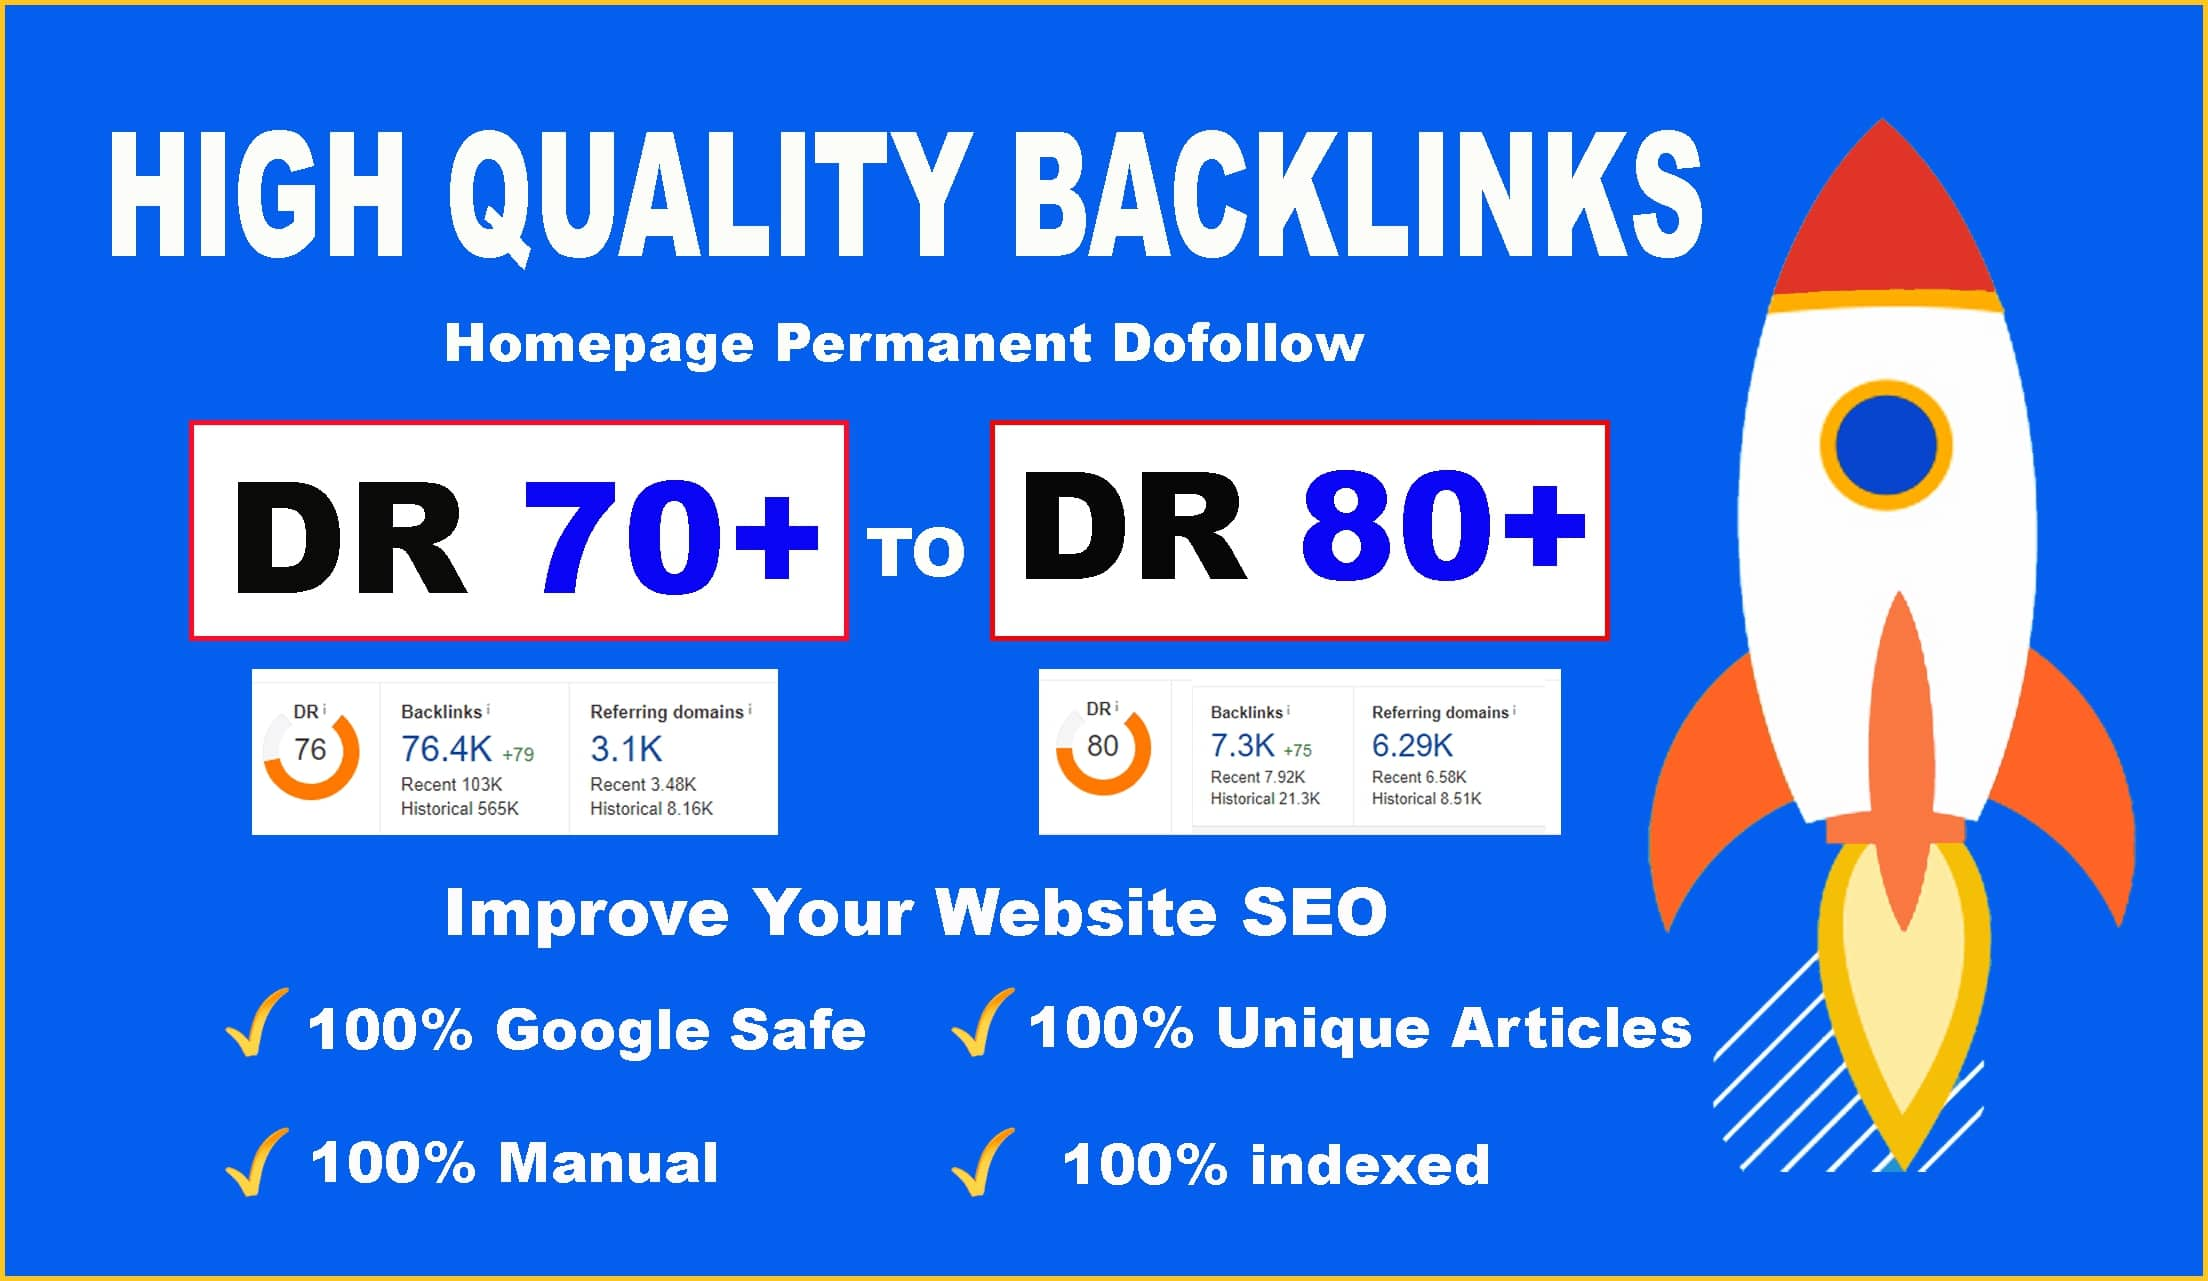 You will Get your website on Google rankings by manual backlinks